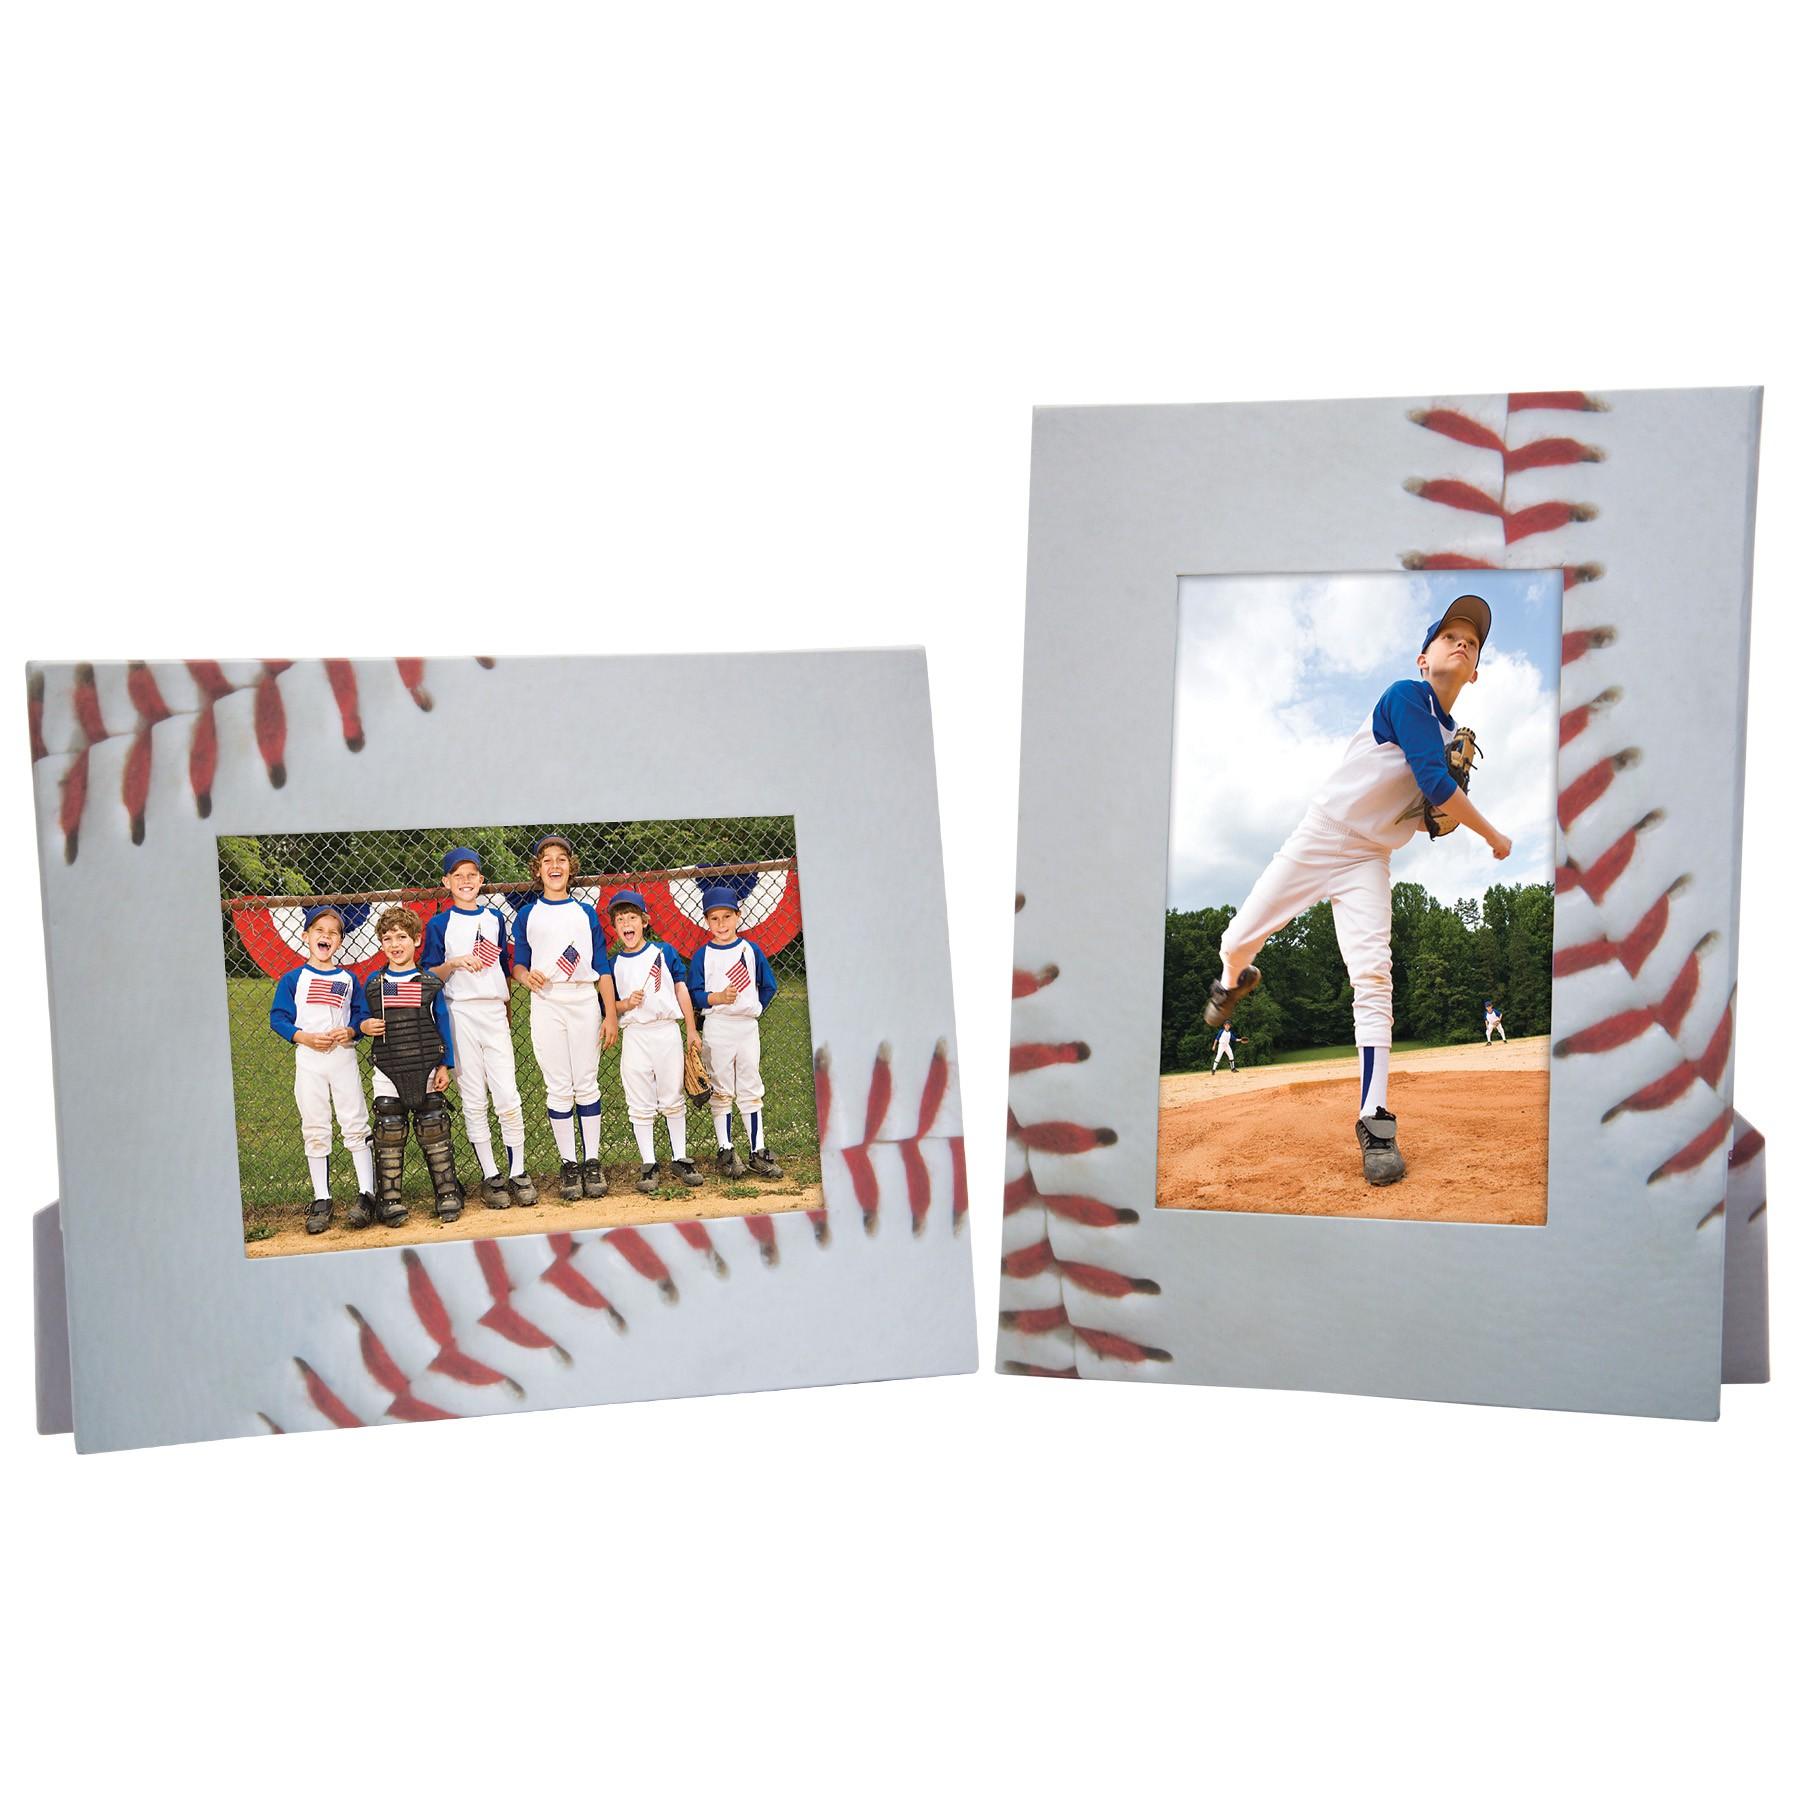 Wholesale Paper Picture Frames - Baseball Picture Frame | Neil ...